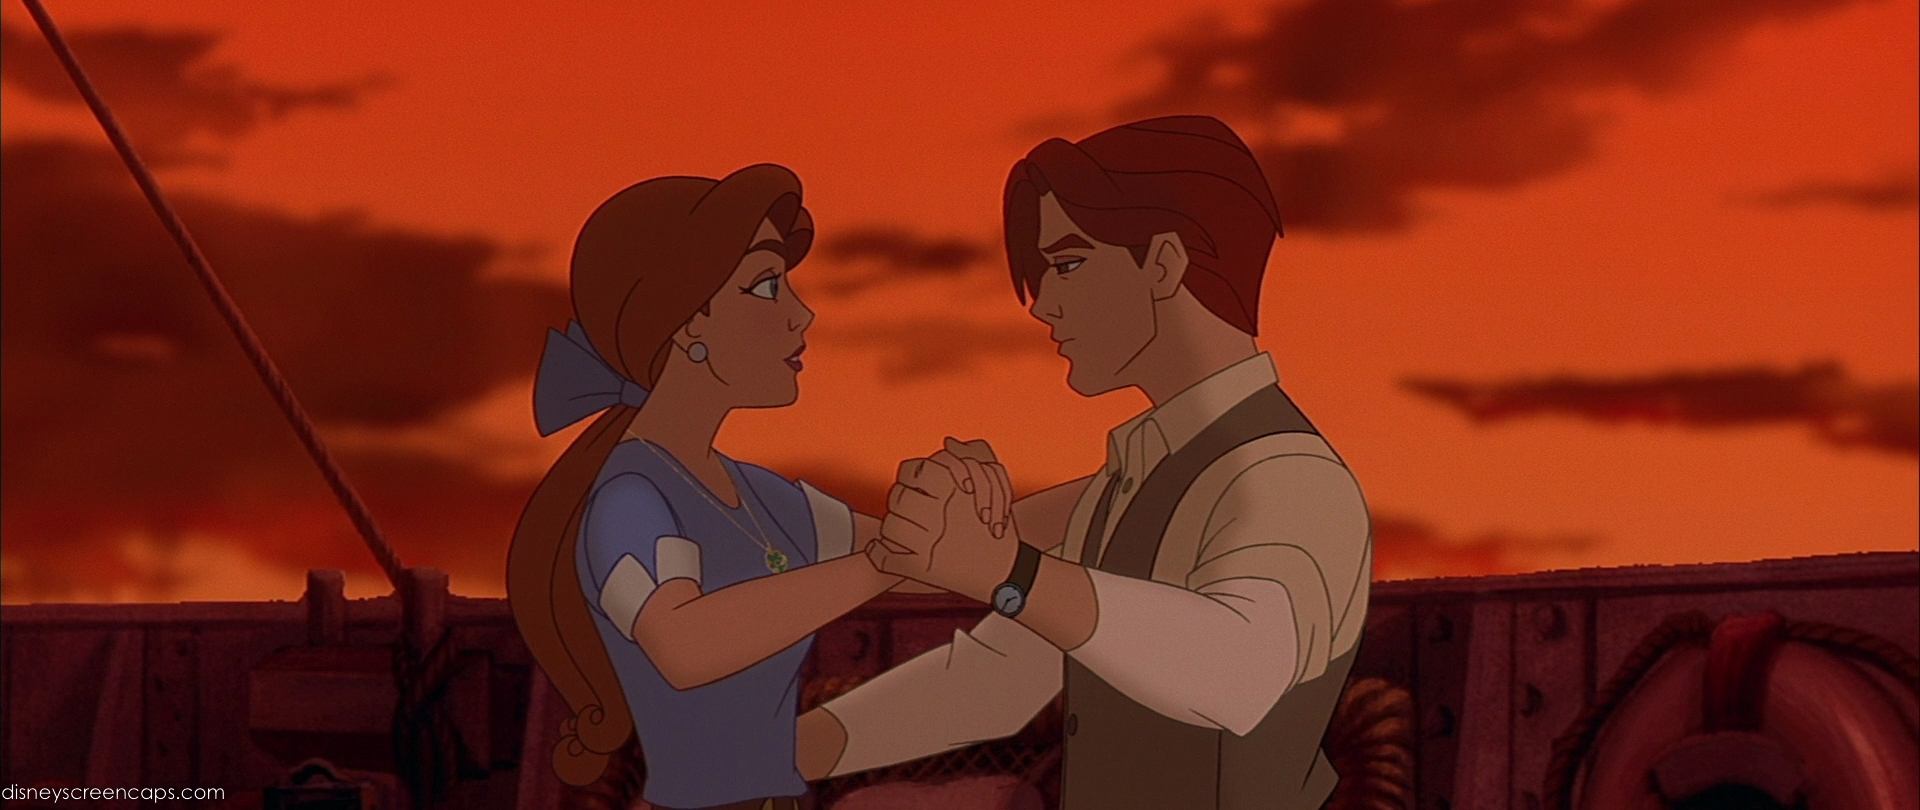 Learn to Do It (Waltz reprise) | Don Bluth Wiki | FANDOM powered ...